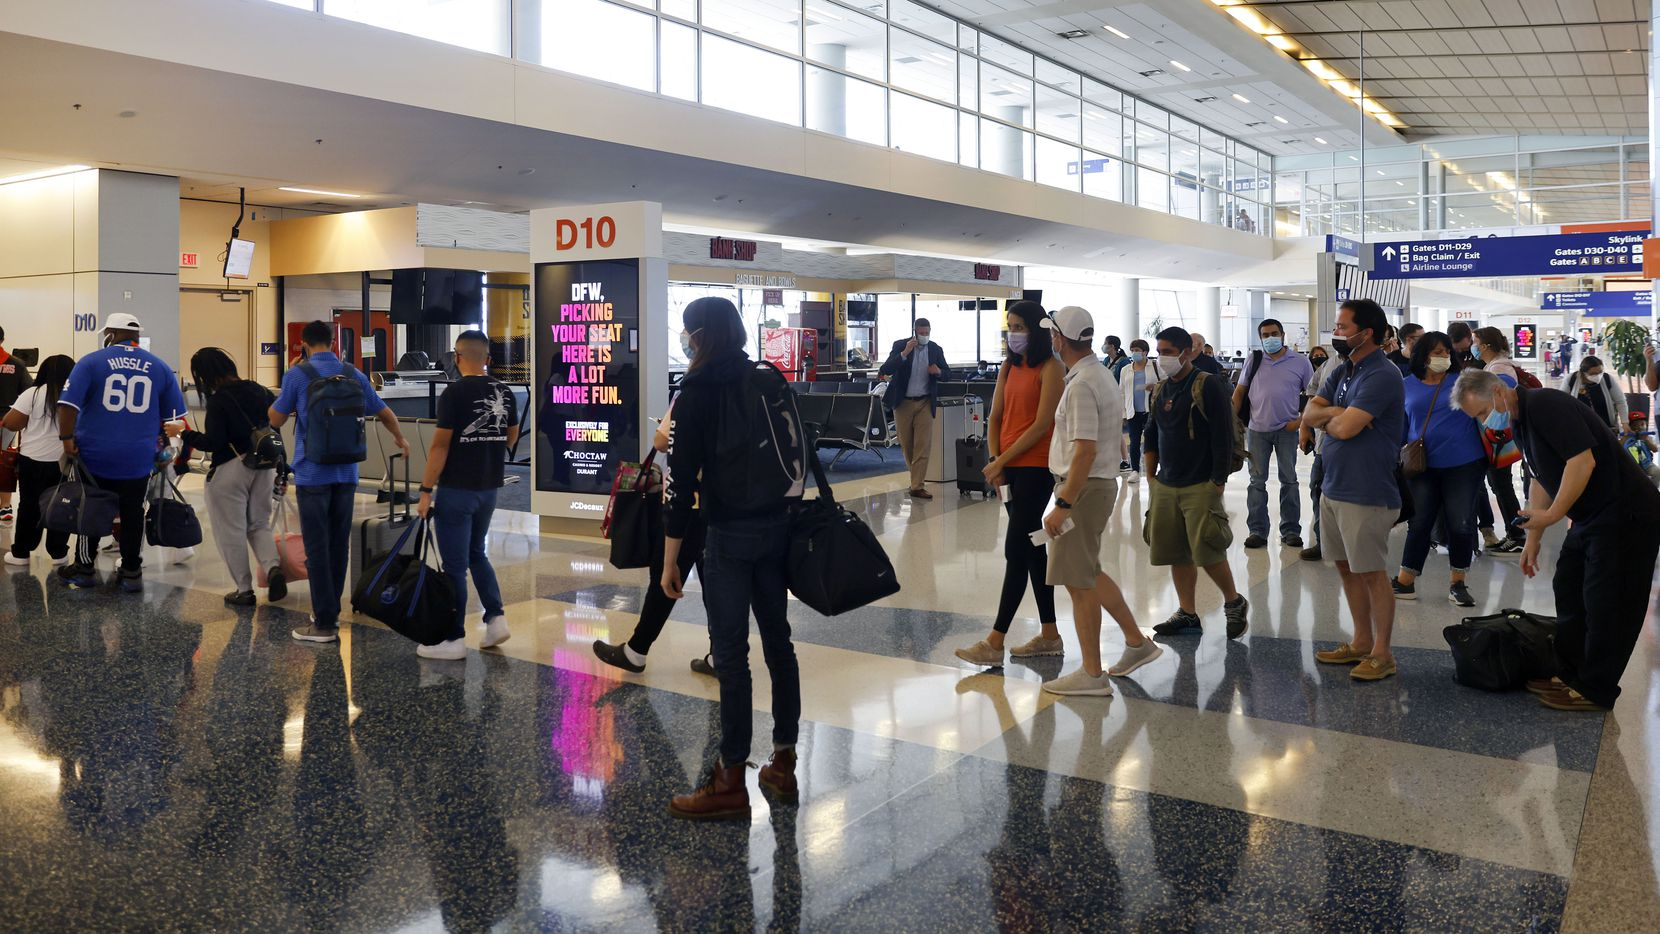 Passengers board a flight to Phoenix in Terminal D at Dallas-Fort Worth International Airport, Thursday, May 6, 2021. (Tom Fox/The Dallas Morning News)